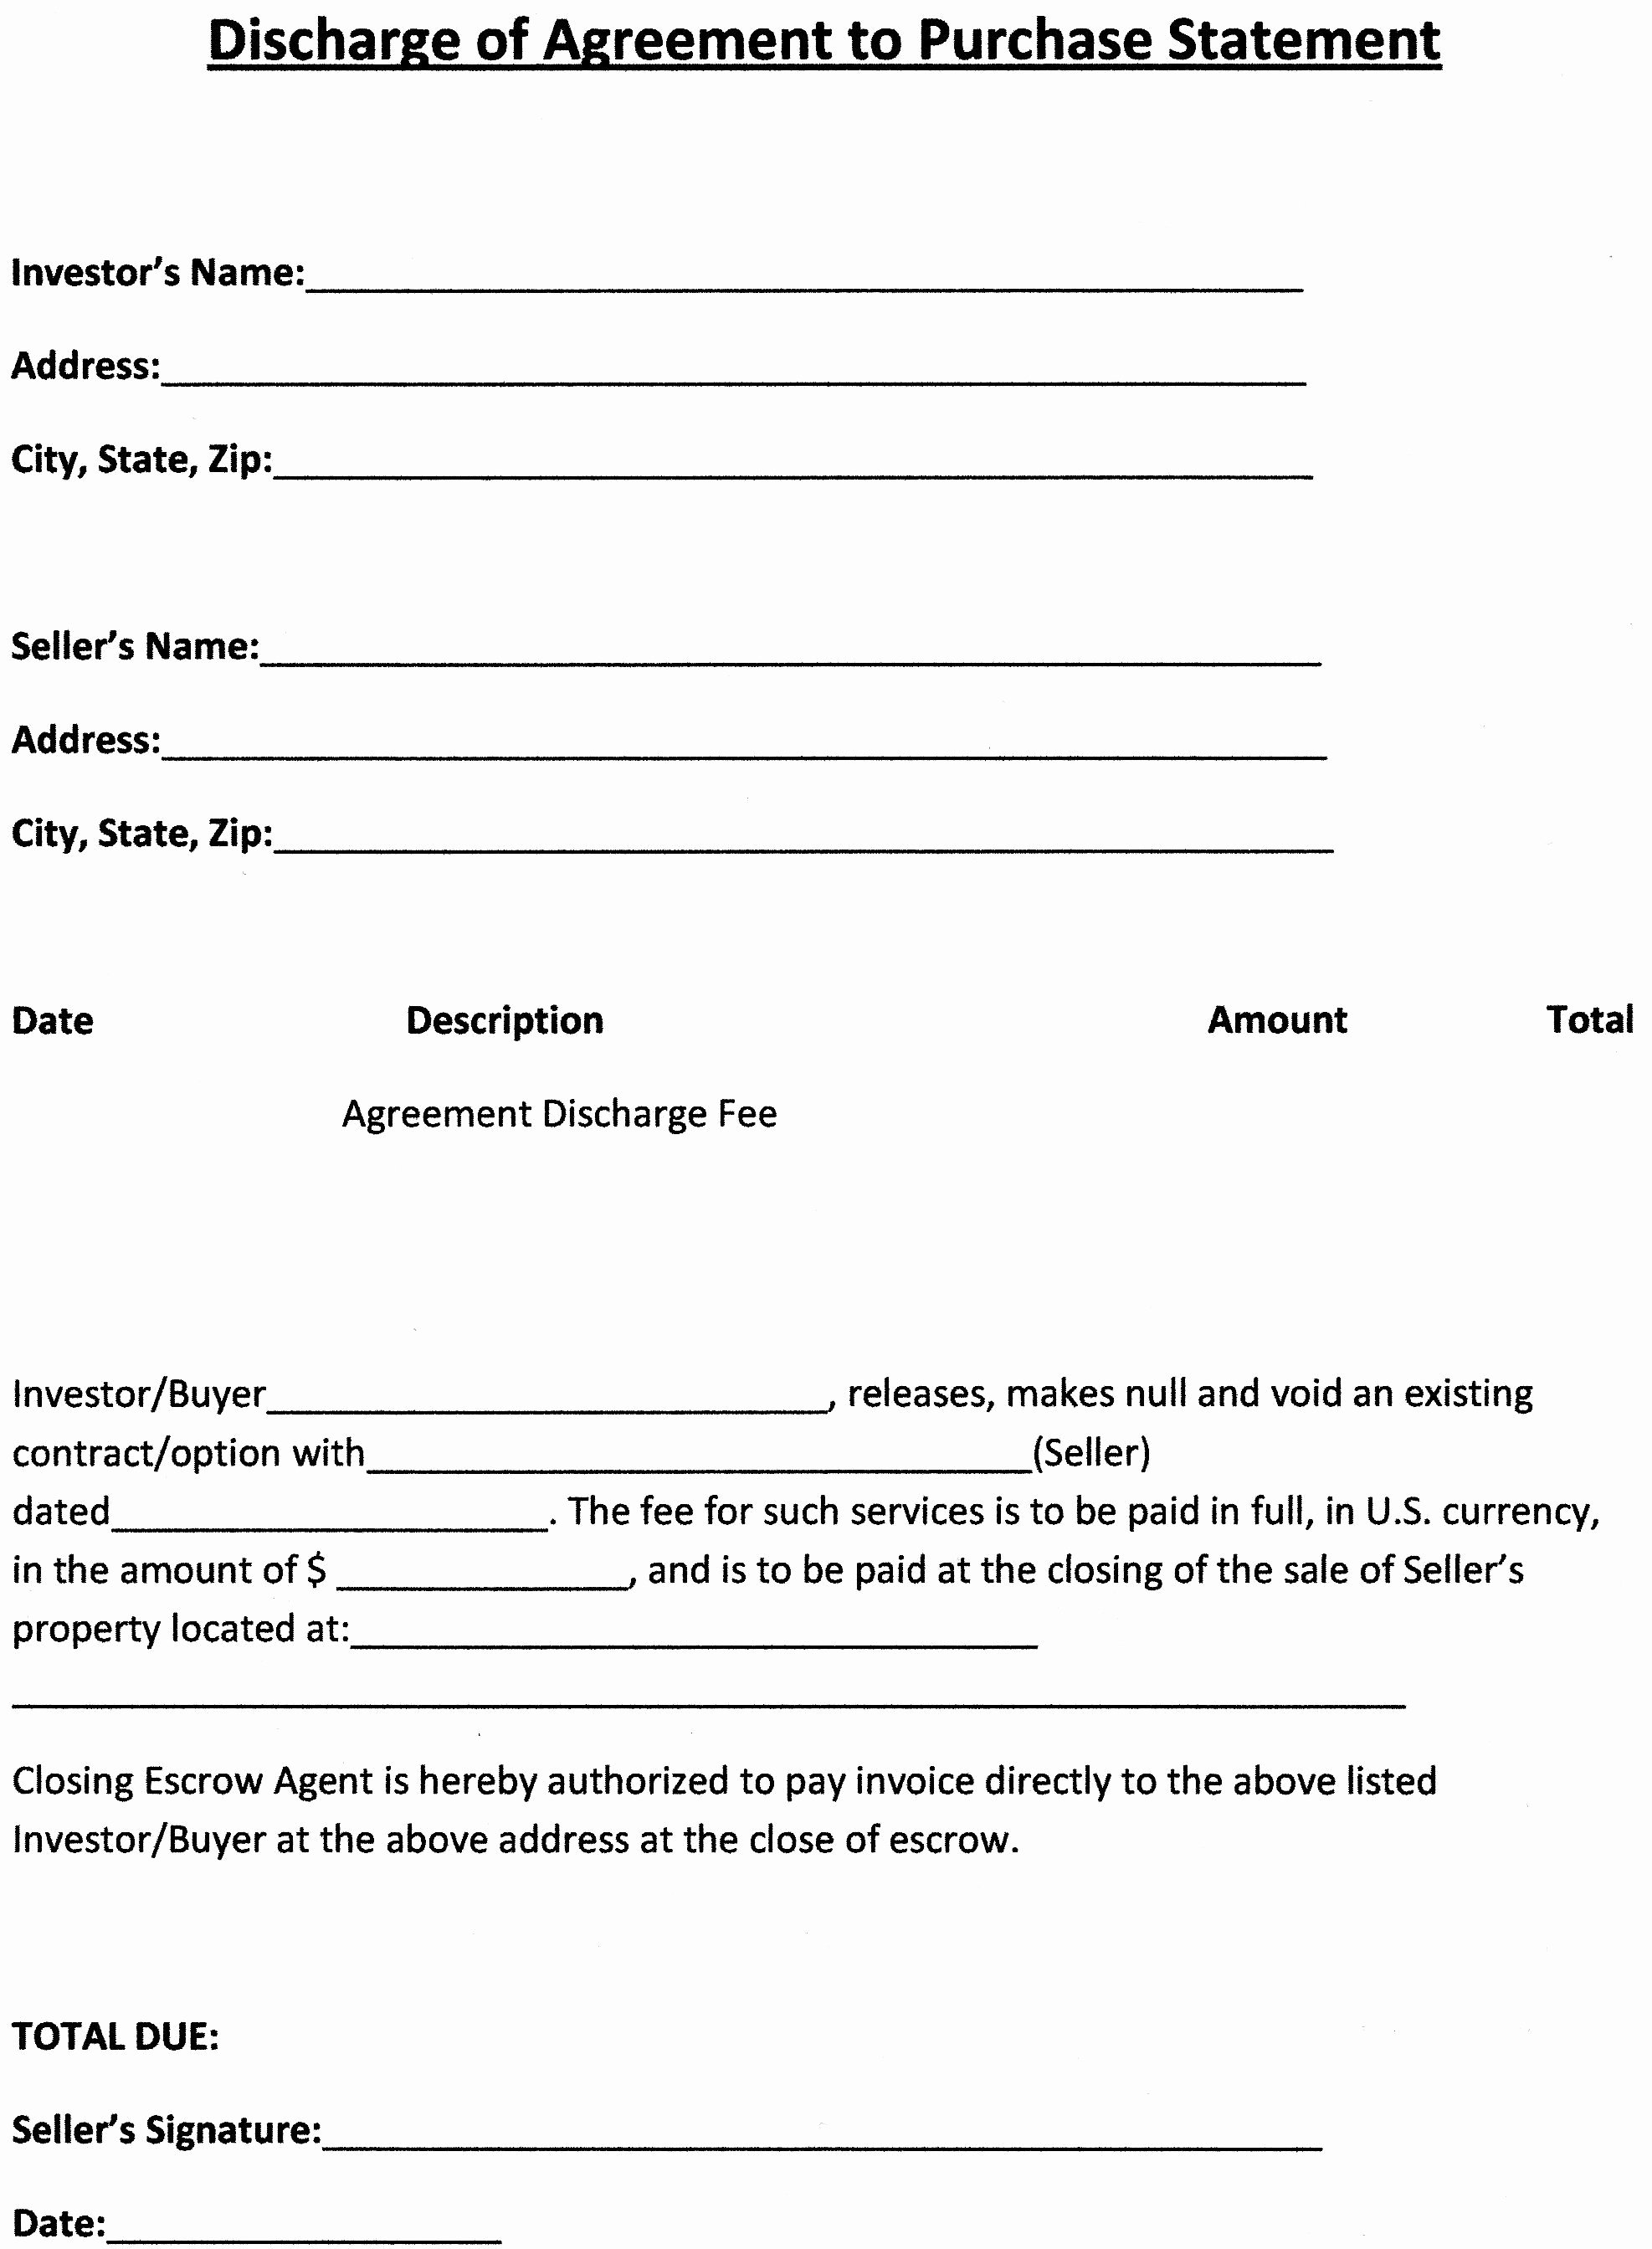 Purchase Agreement Template for House New Pin by Denice Huntaro On Real State